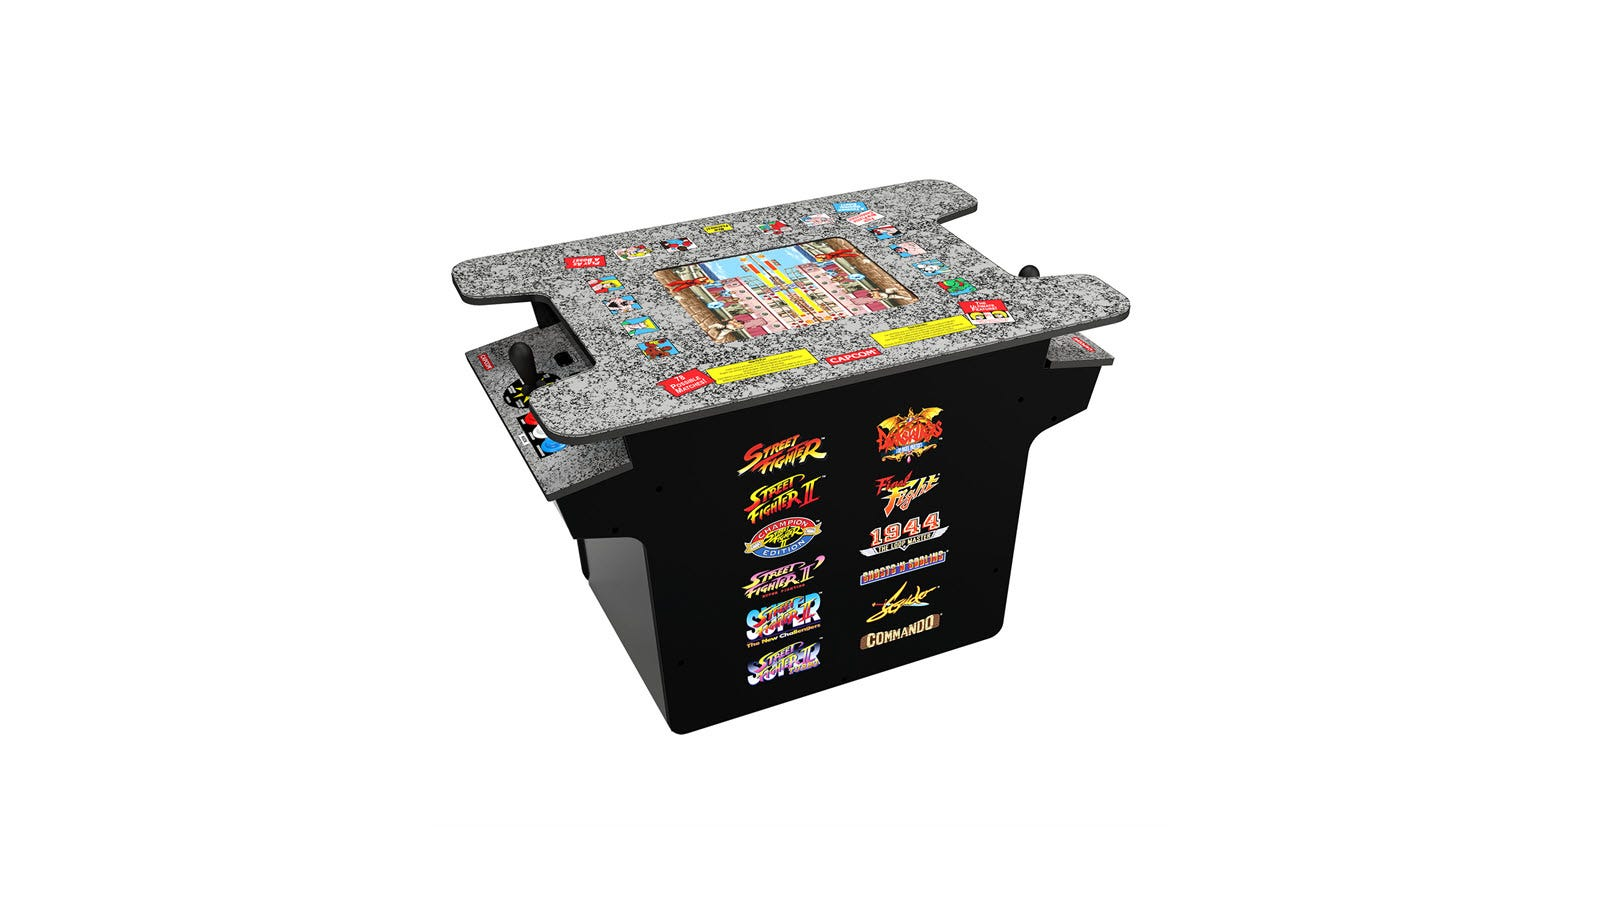 A Street Fighter cocktail table machine, featuring 12 games listed on the side.